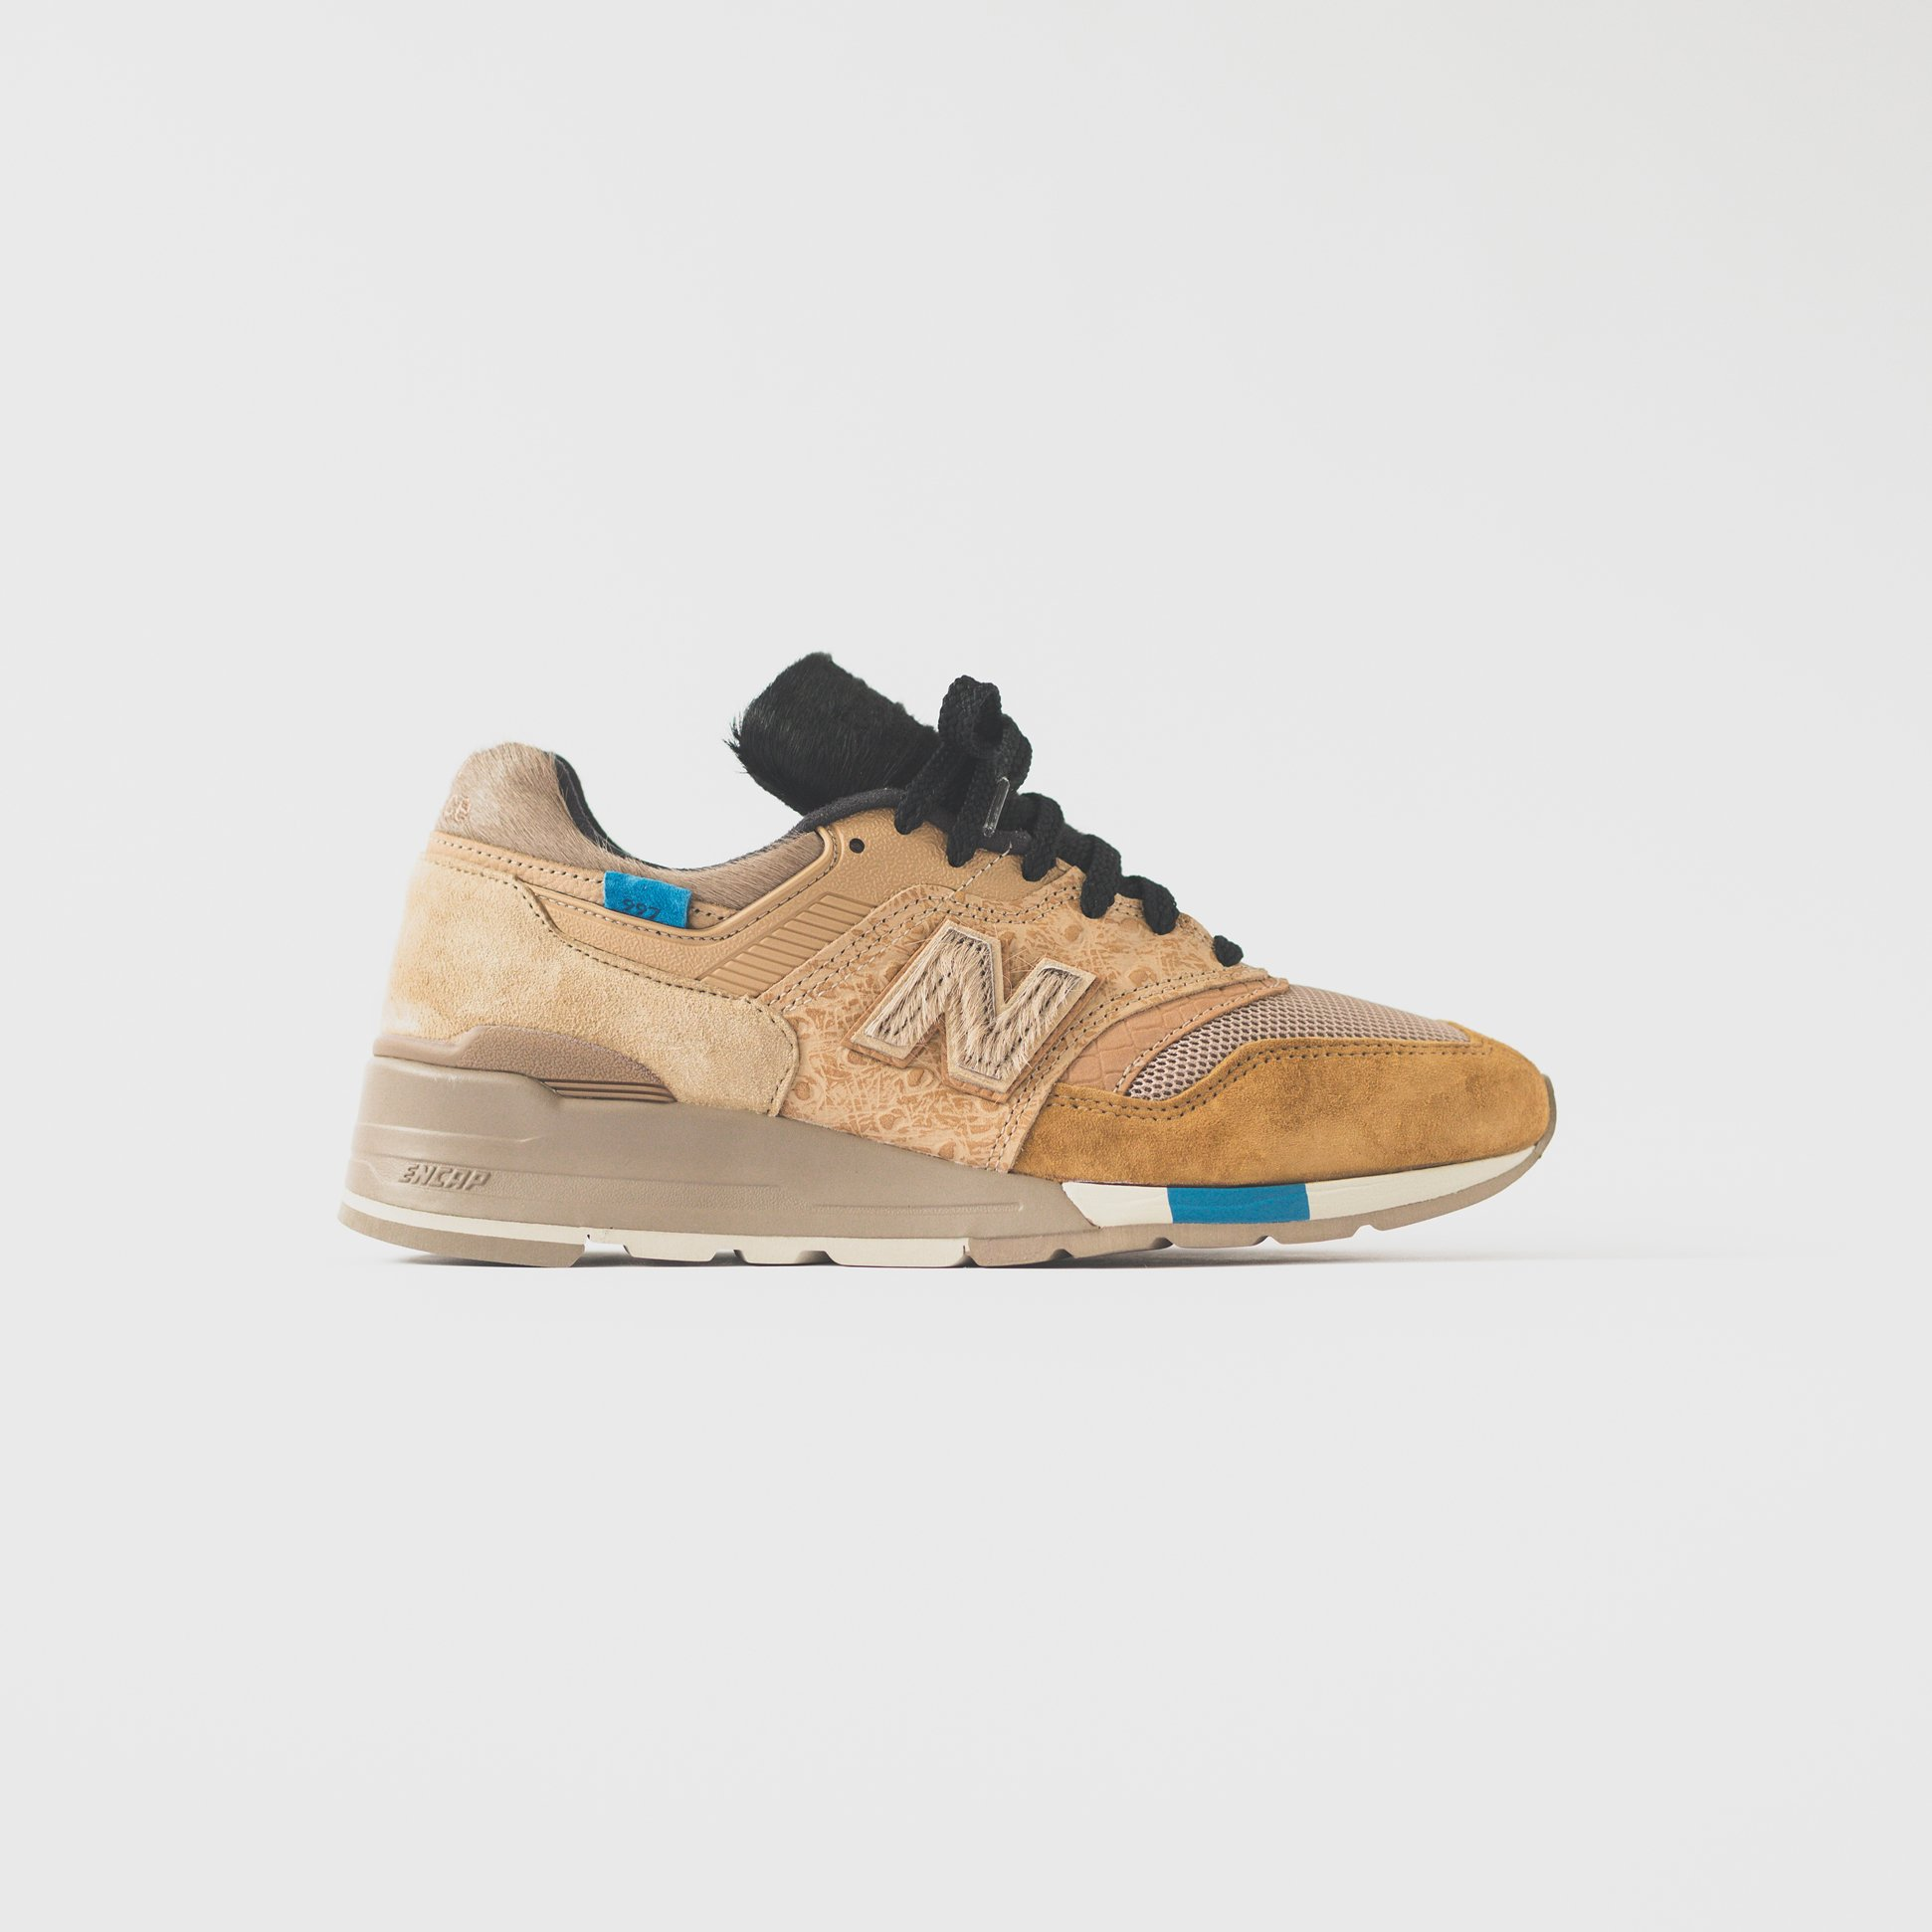 8e45af6962665 ... through KITH stores and the online shop, in addition to the United  Arrows & Sons and nonnative web stores, respectively. See all six colorways  below: